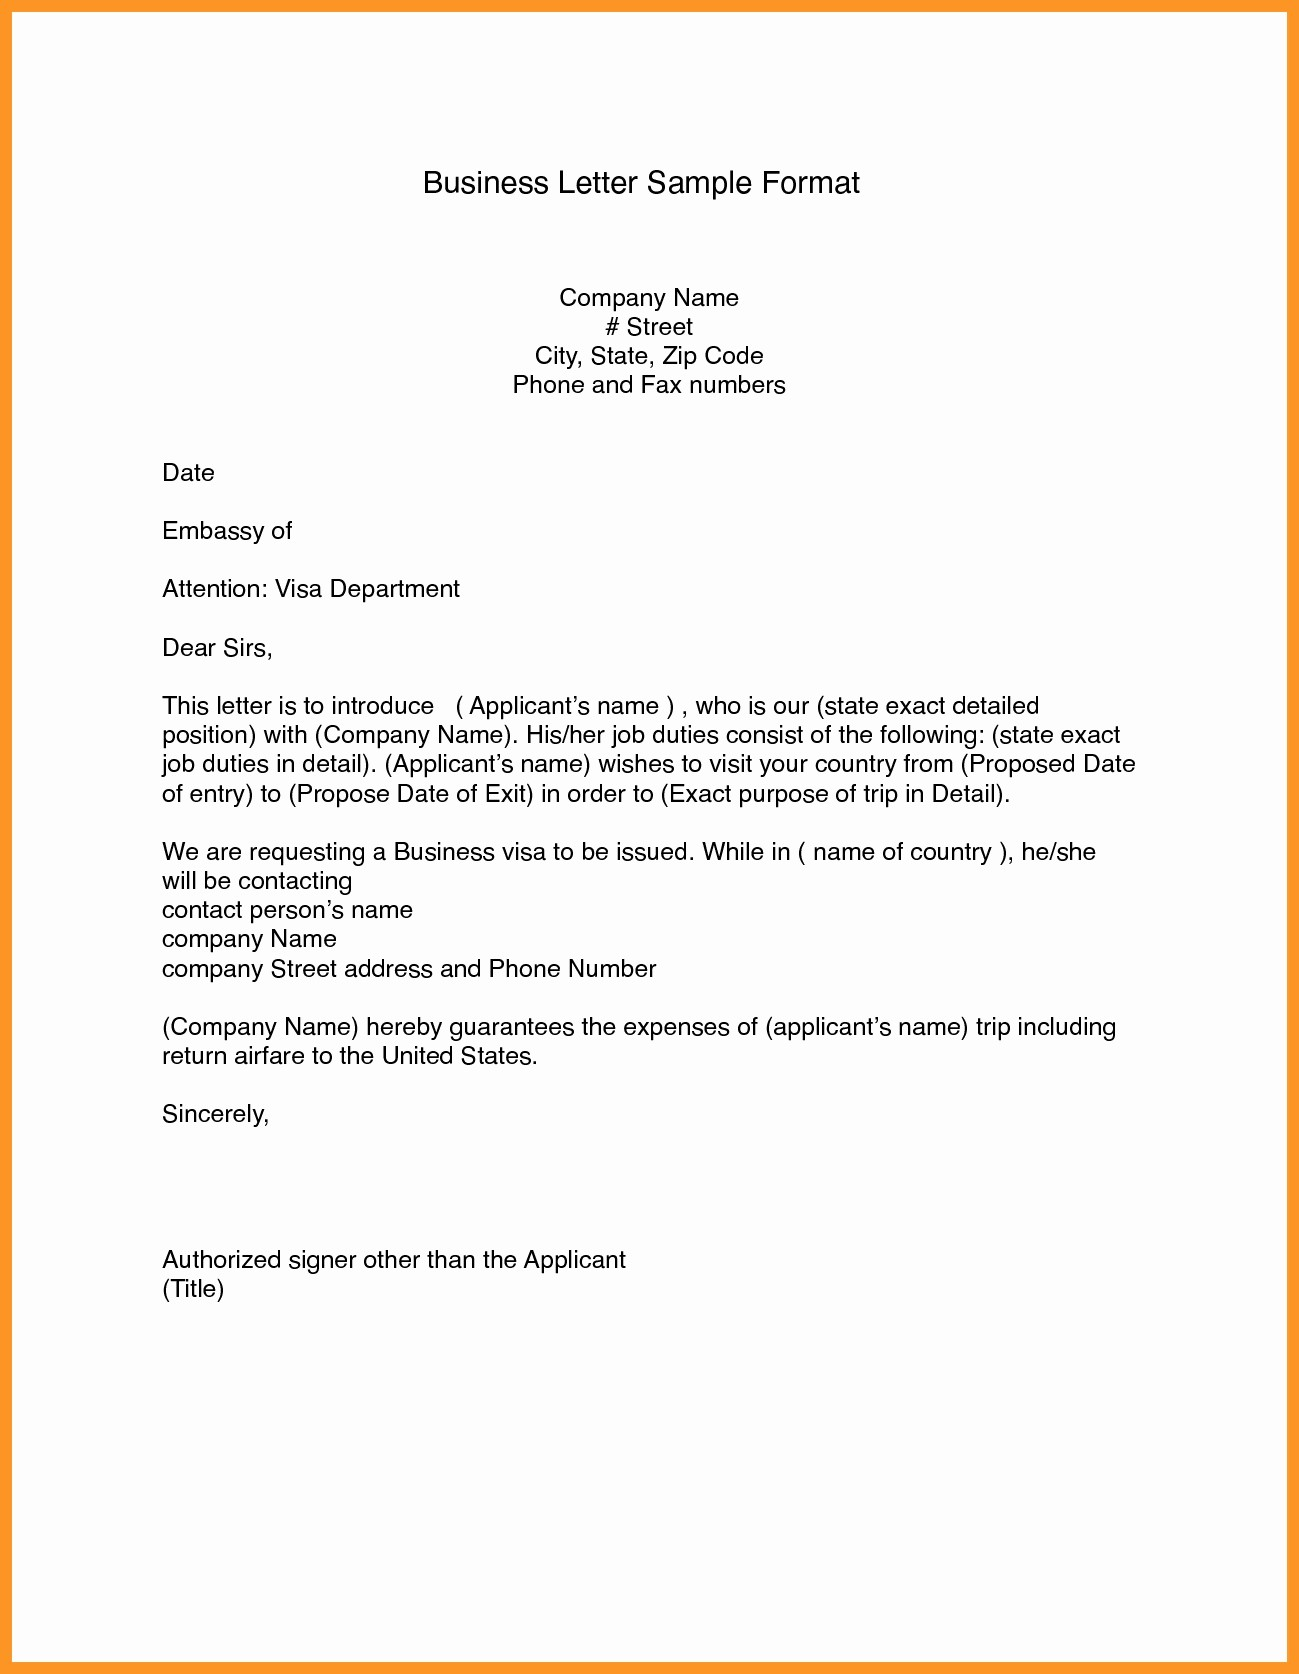 Formal Letter Template Microsoft Word New Business Letter format Template Word